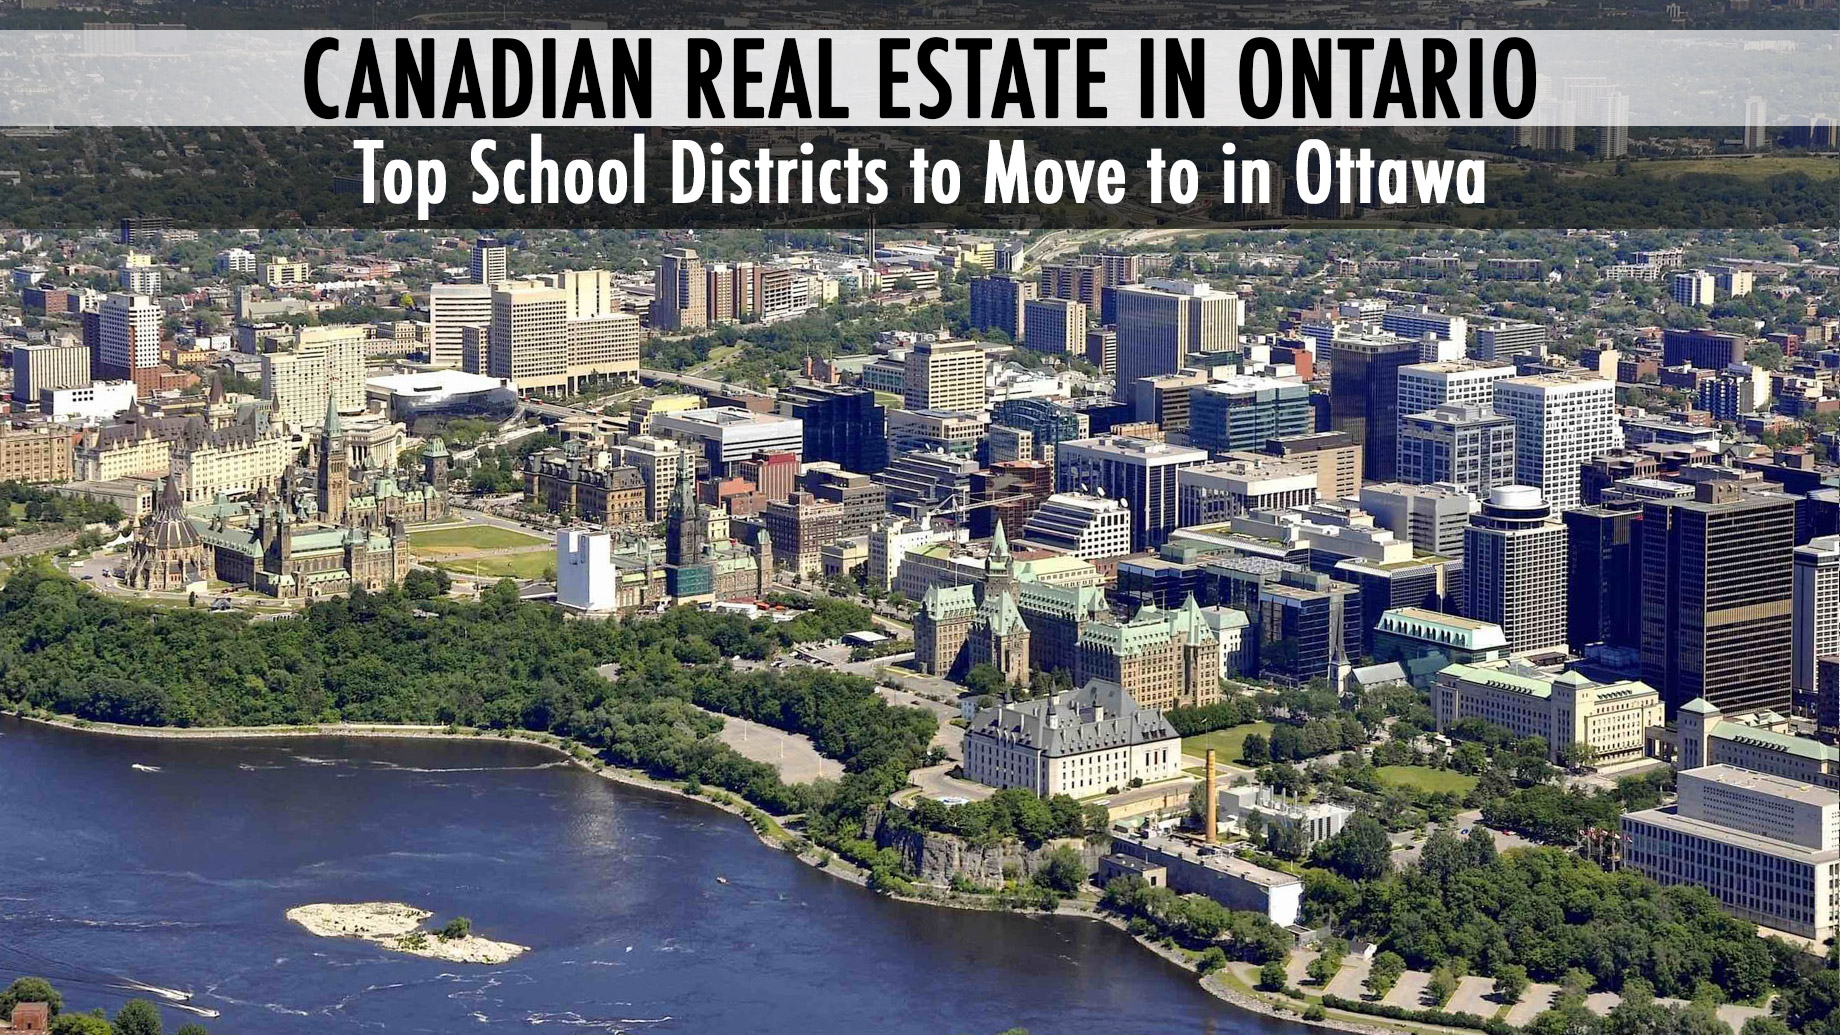 Canadian Real Estate in Ontario - Top School Districts to Move to in Ottawa